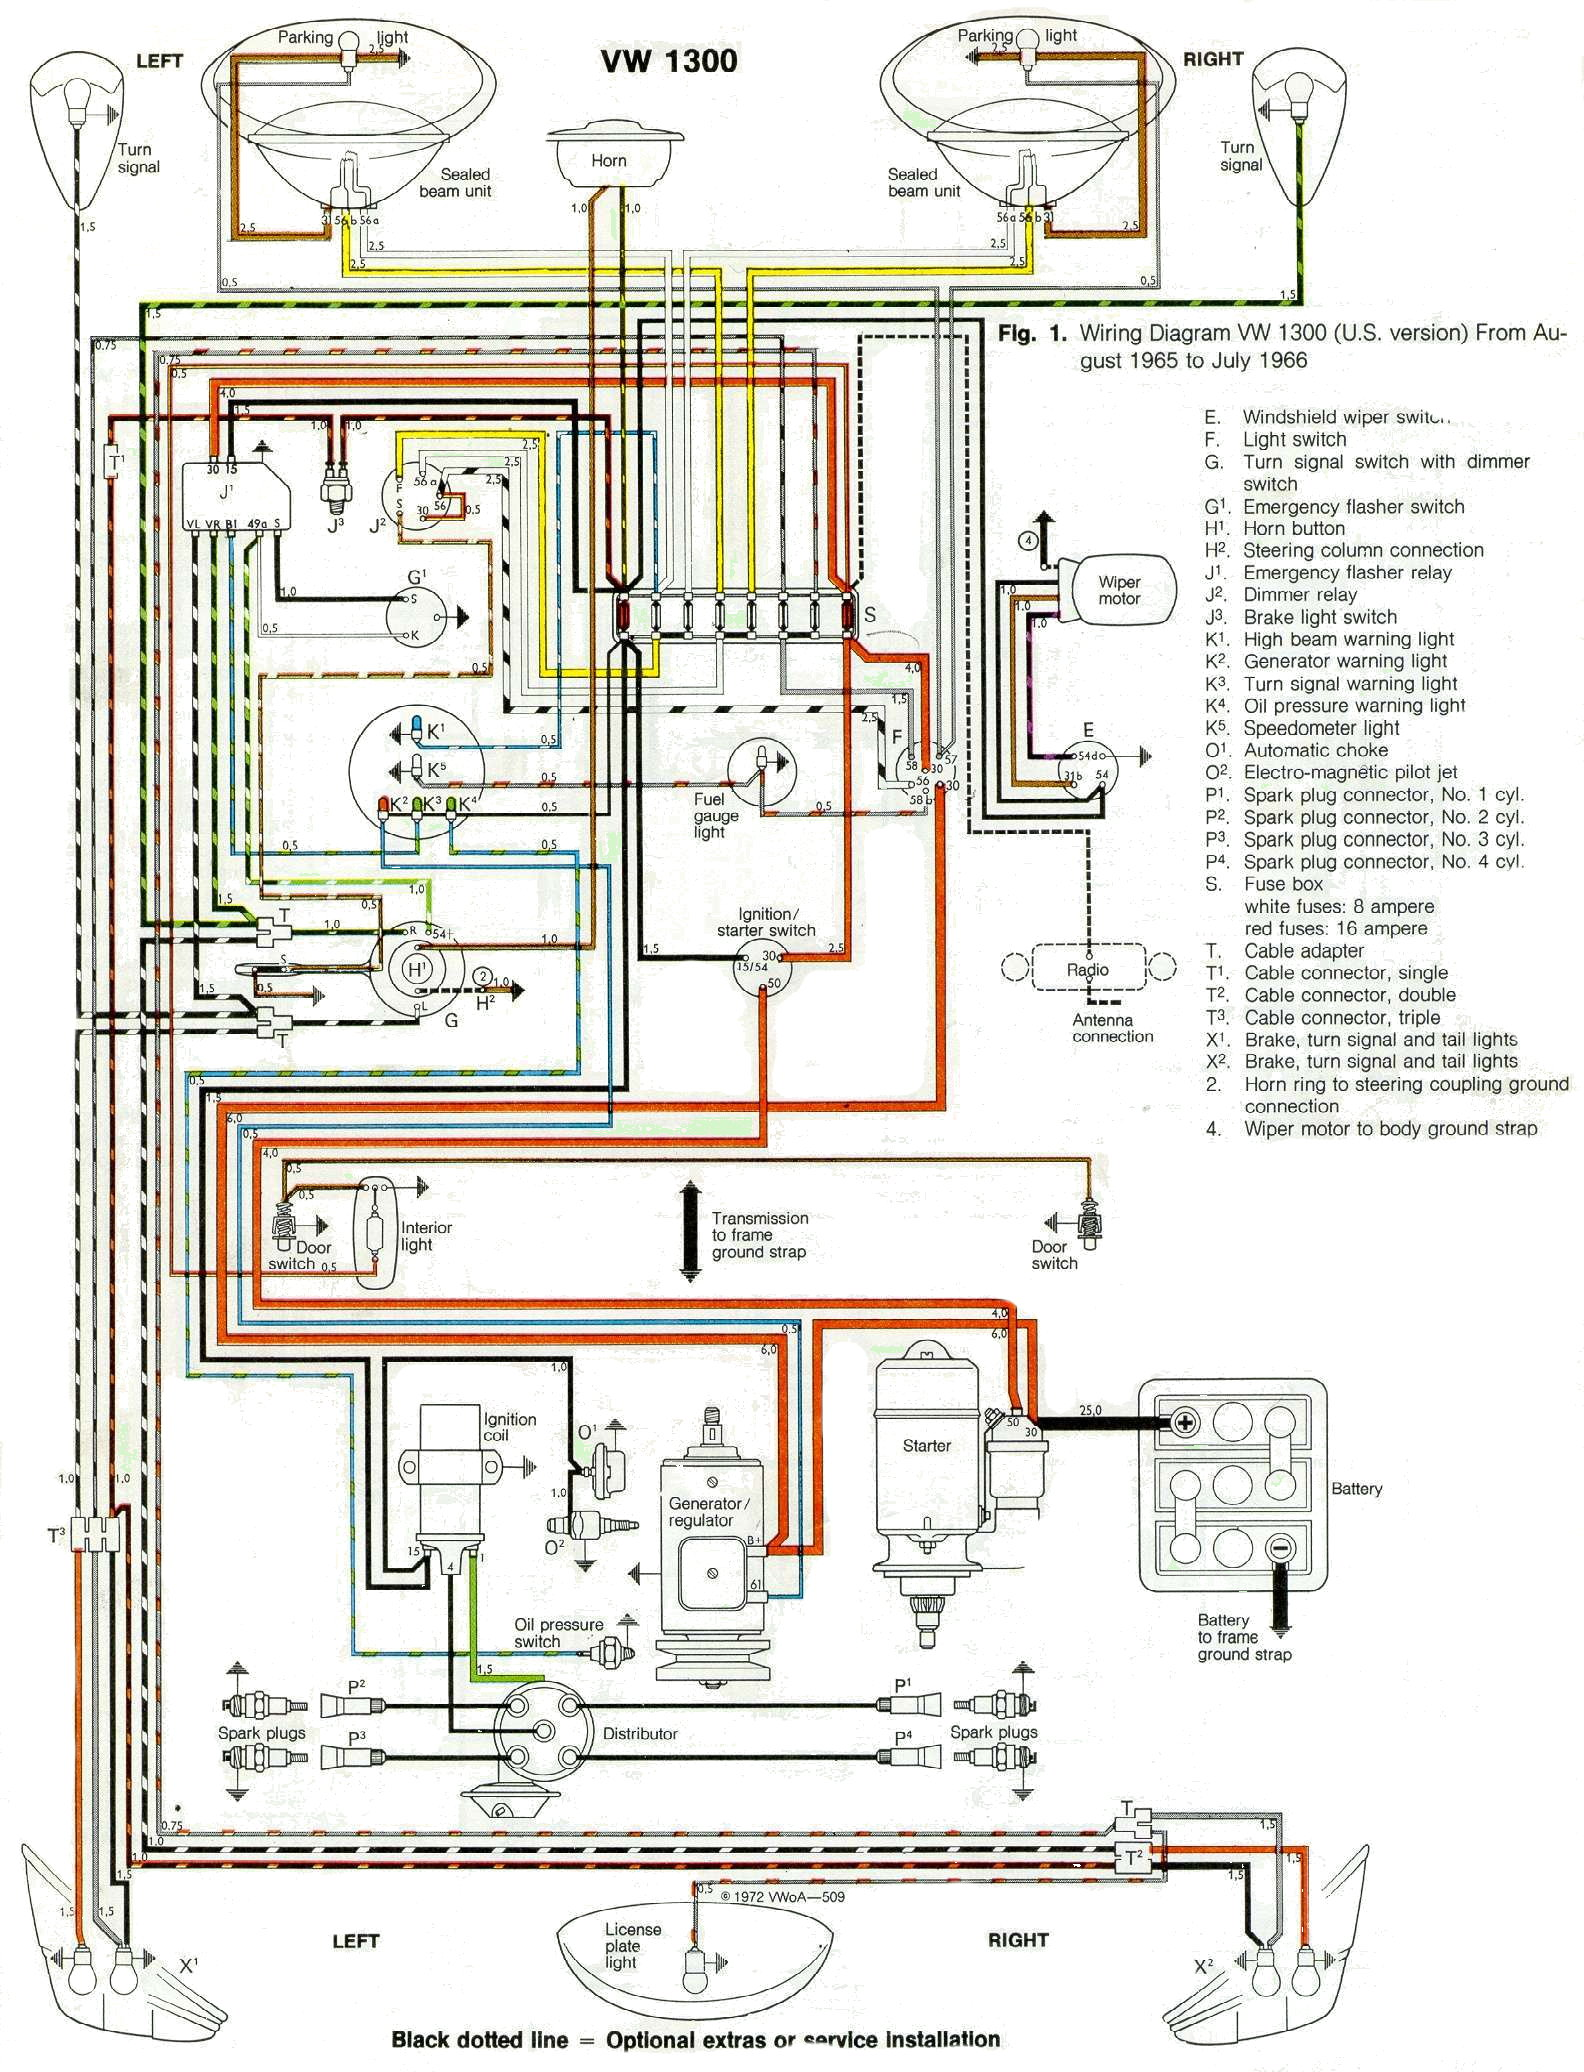 1966 wiring diagram rh 1966vwbeetle com 1968 vw beetle wiring diagram 1956 vw beetle wiring diagram